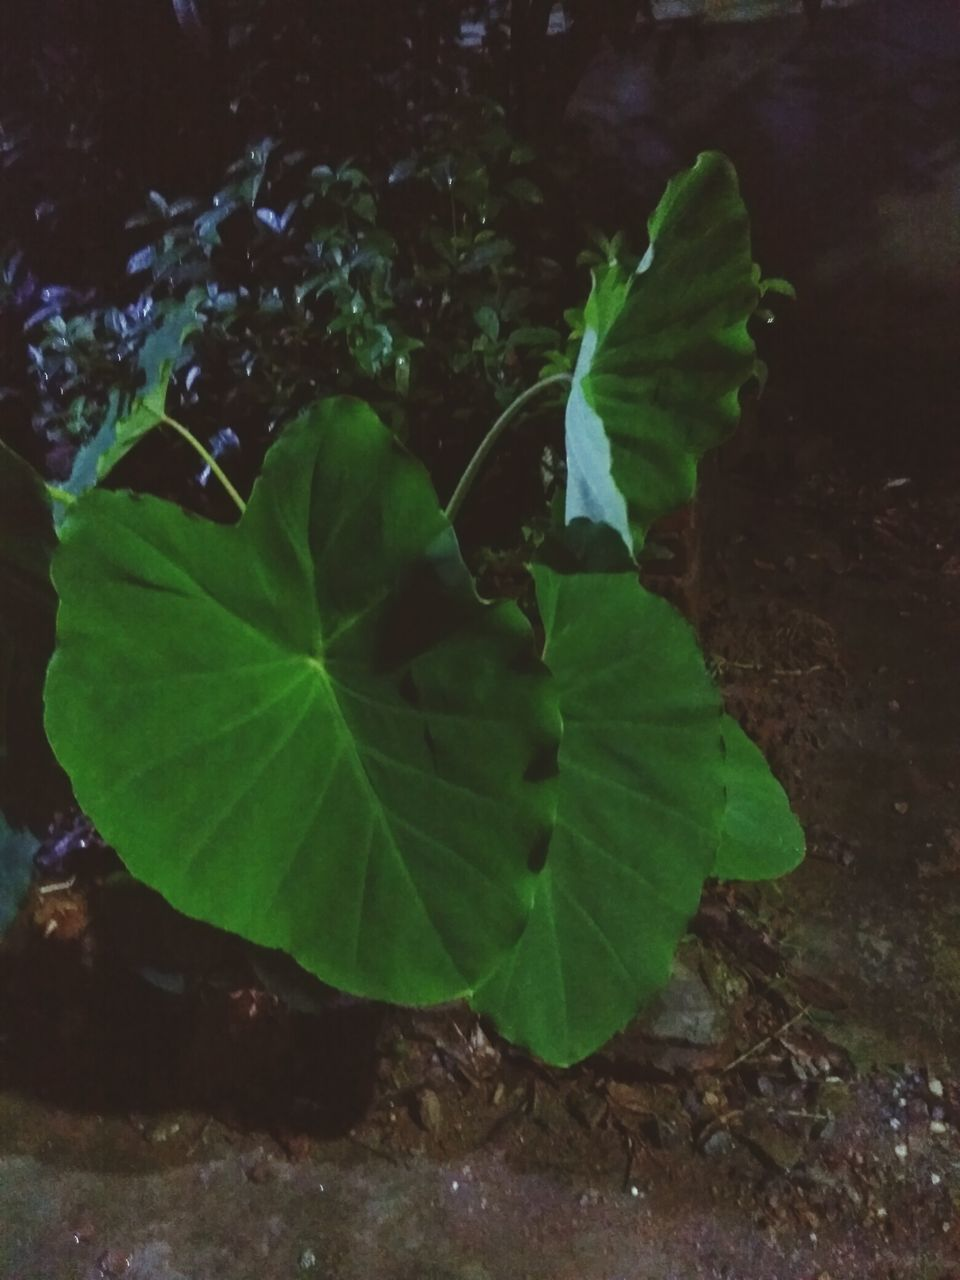 leaf, green color, growth, no people, nature, plant, outdoors, freshness, close-up, beauty in nature, day, fragility